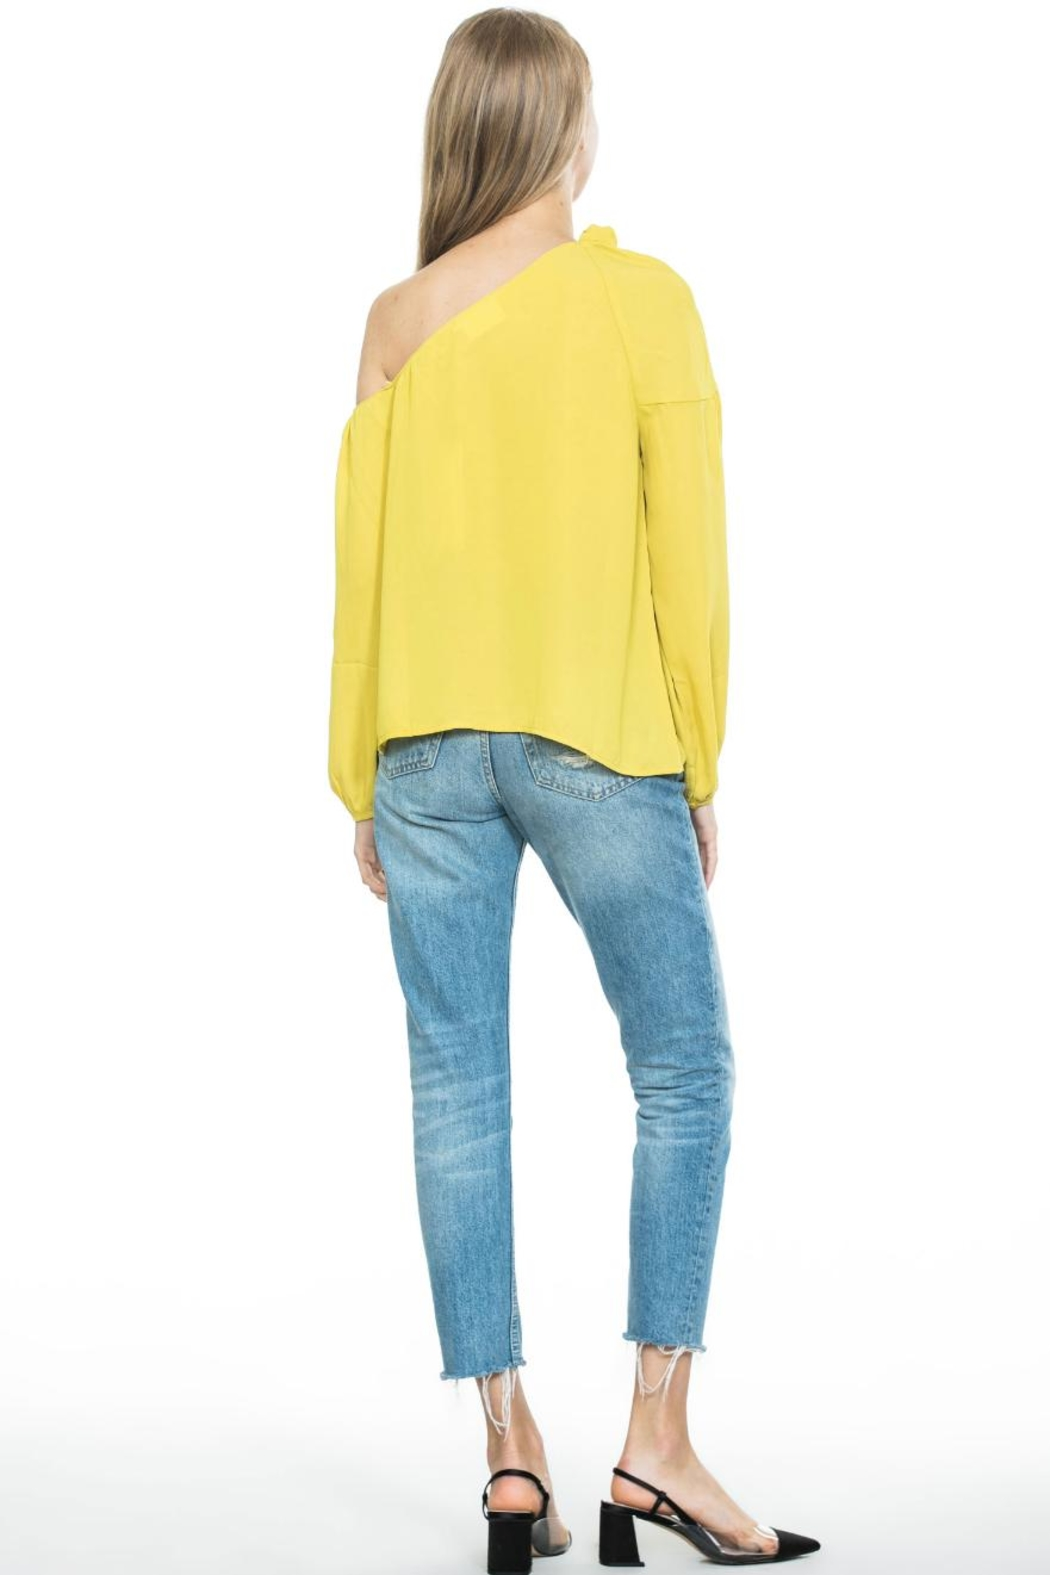 Ark & Co. Mustard Tie Top - Side Cropped Image